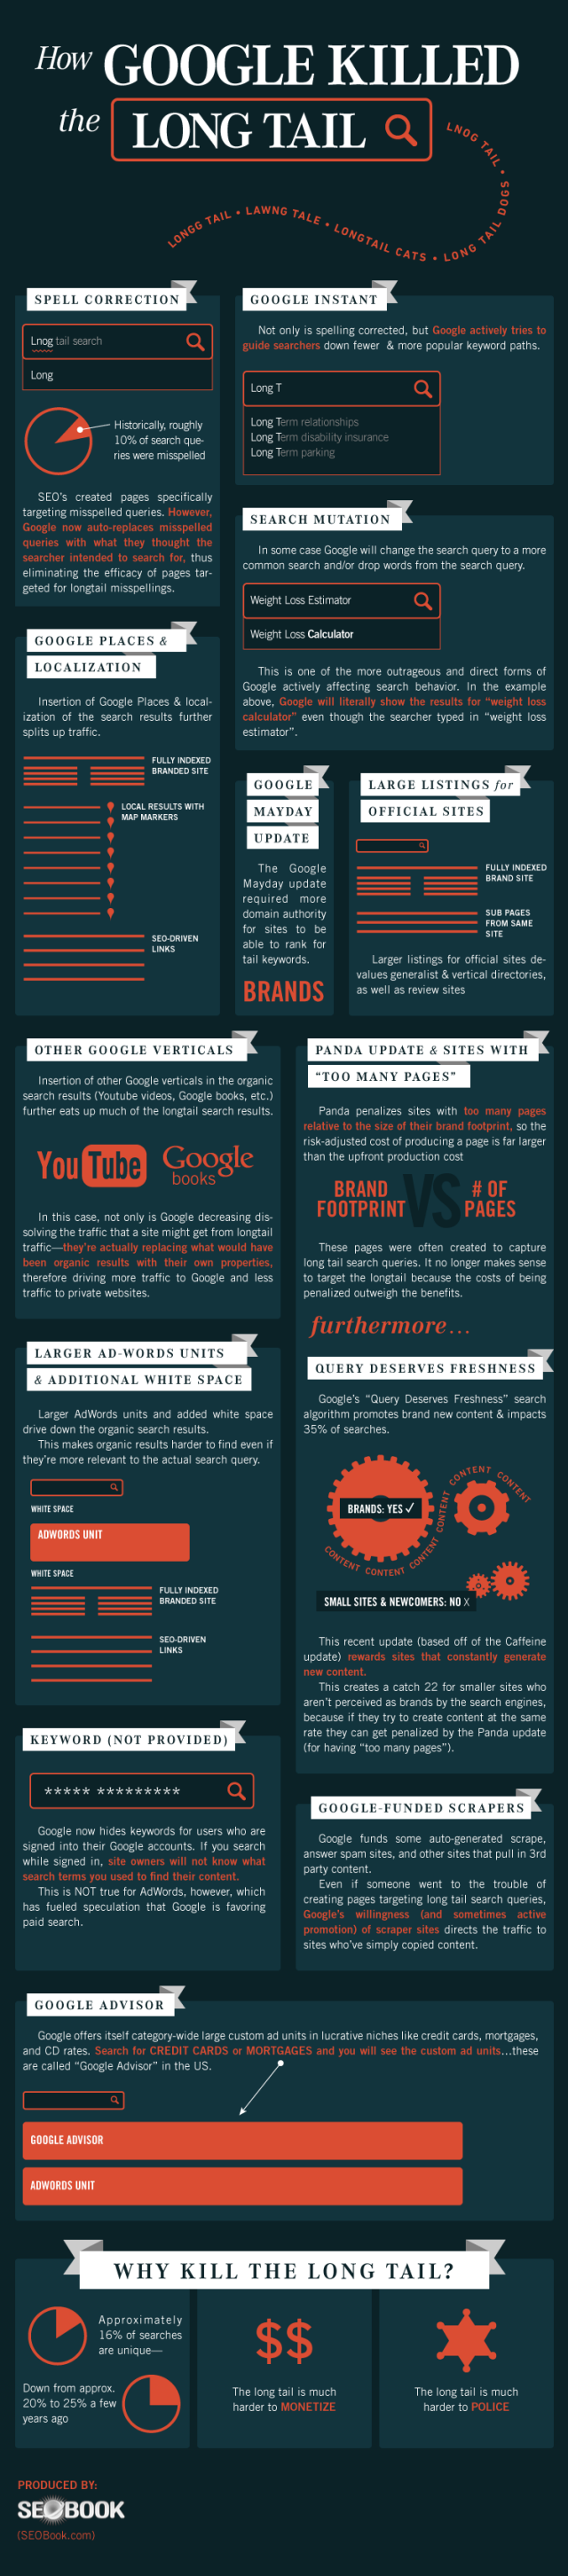 How Google Killed the Longtail Infographic.